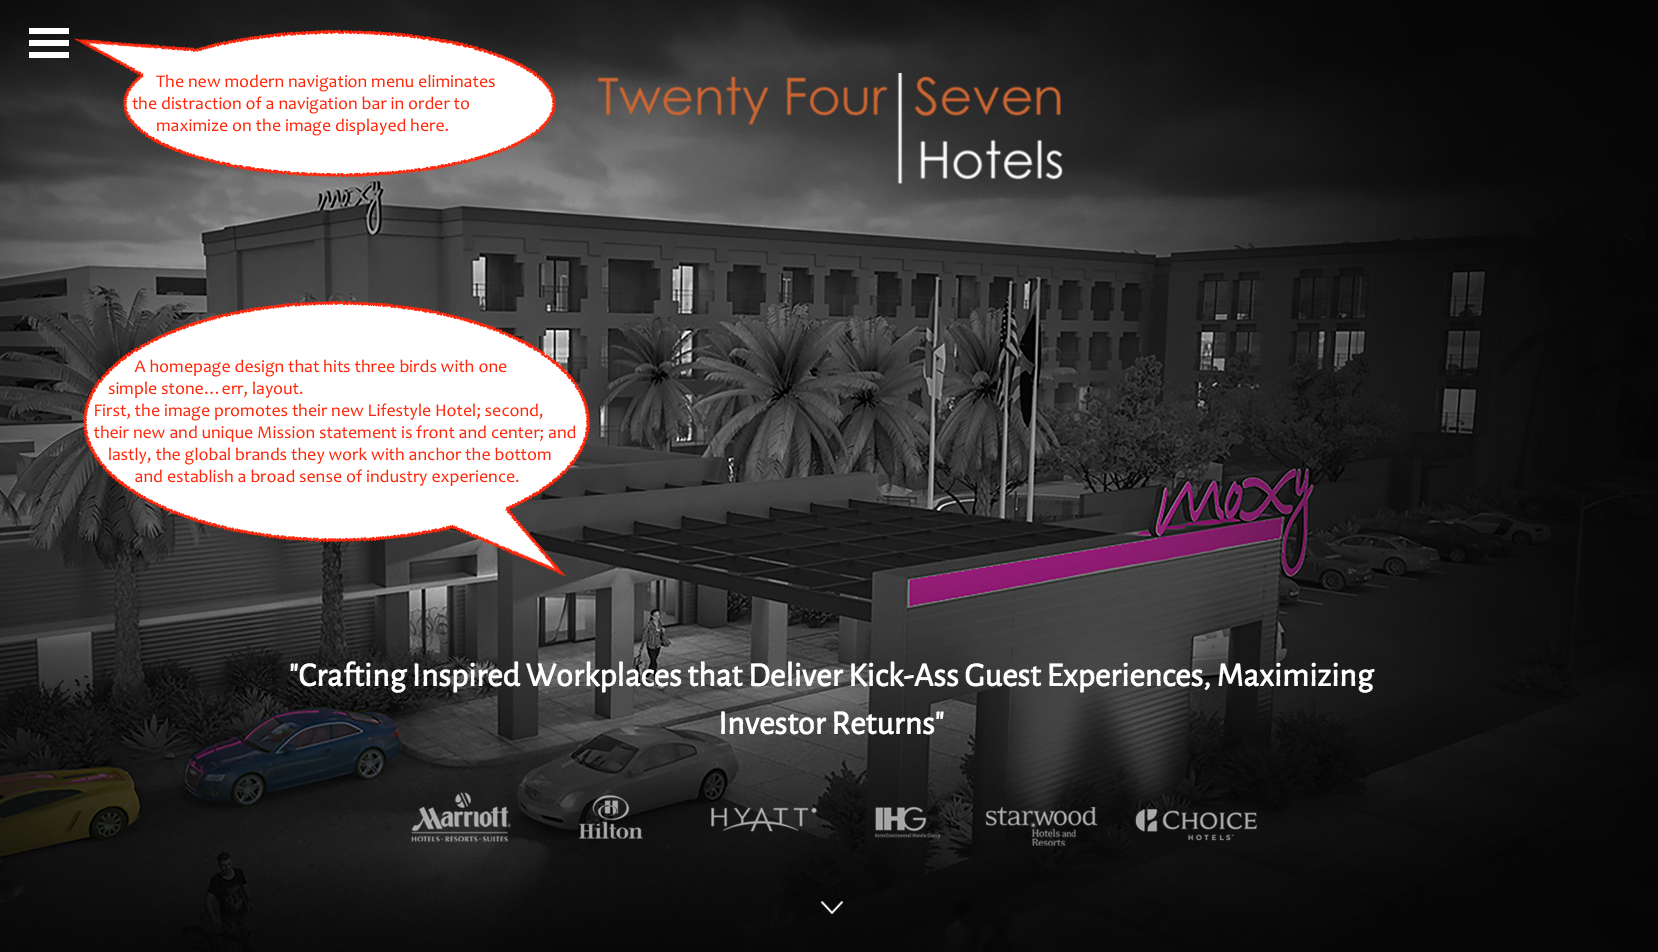 Twenty Four Seven Hotels Home - Another Awesome qualiant Branding Project